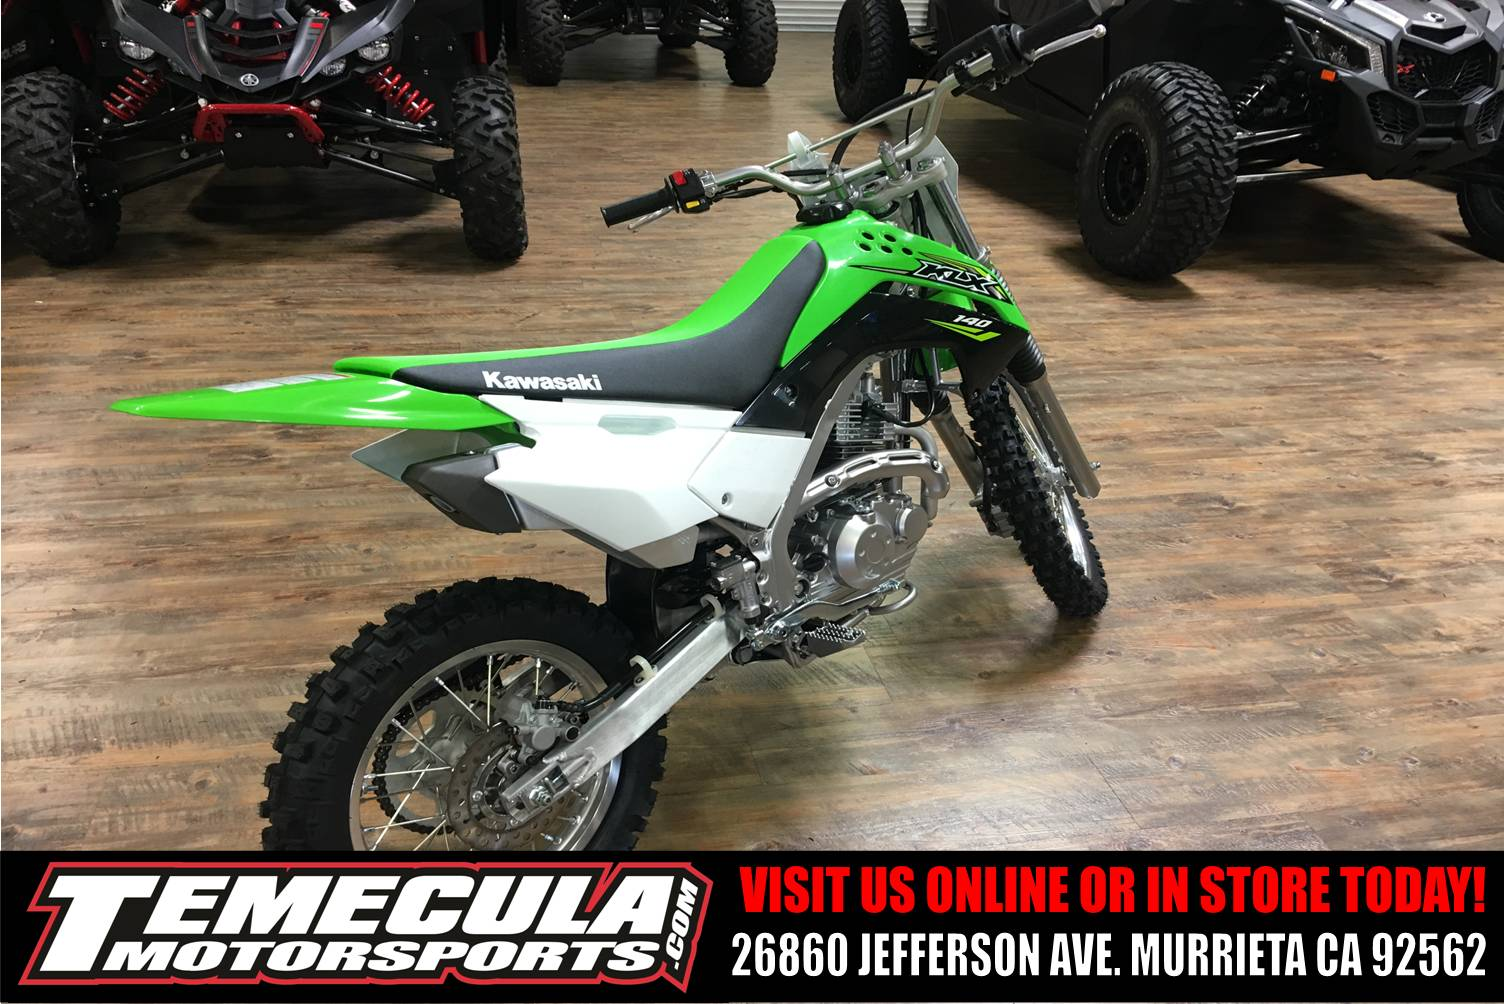 2018 Kawasaki KLX 140 in Murrieta, California